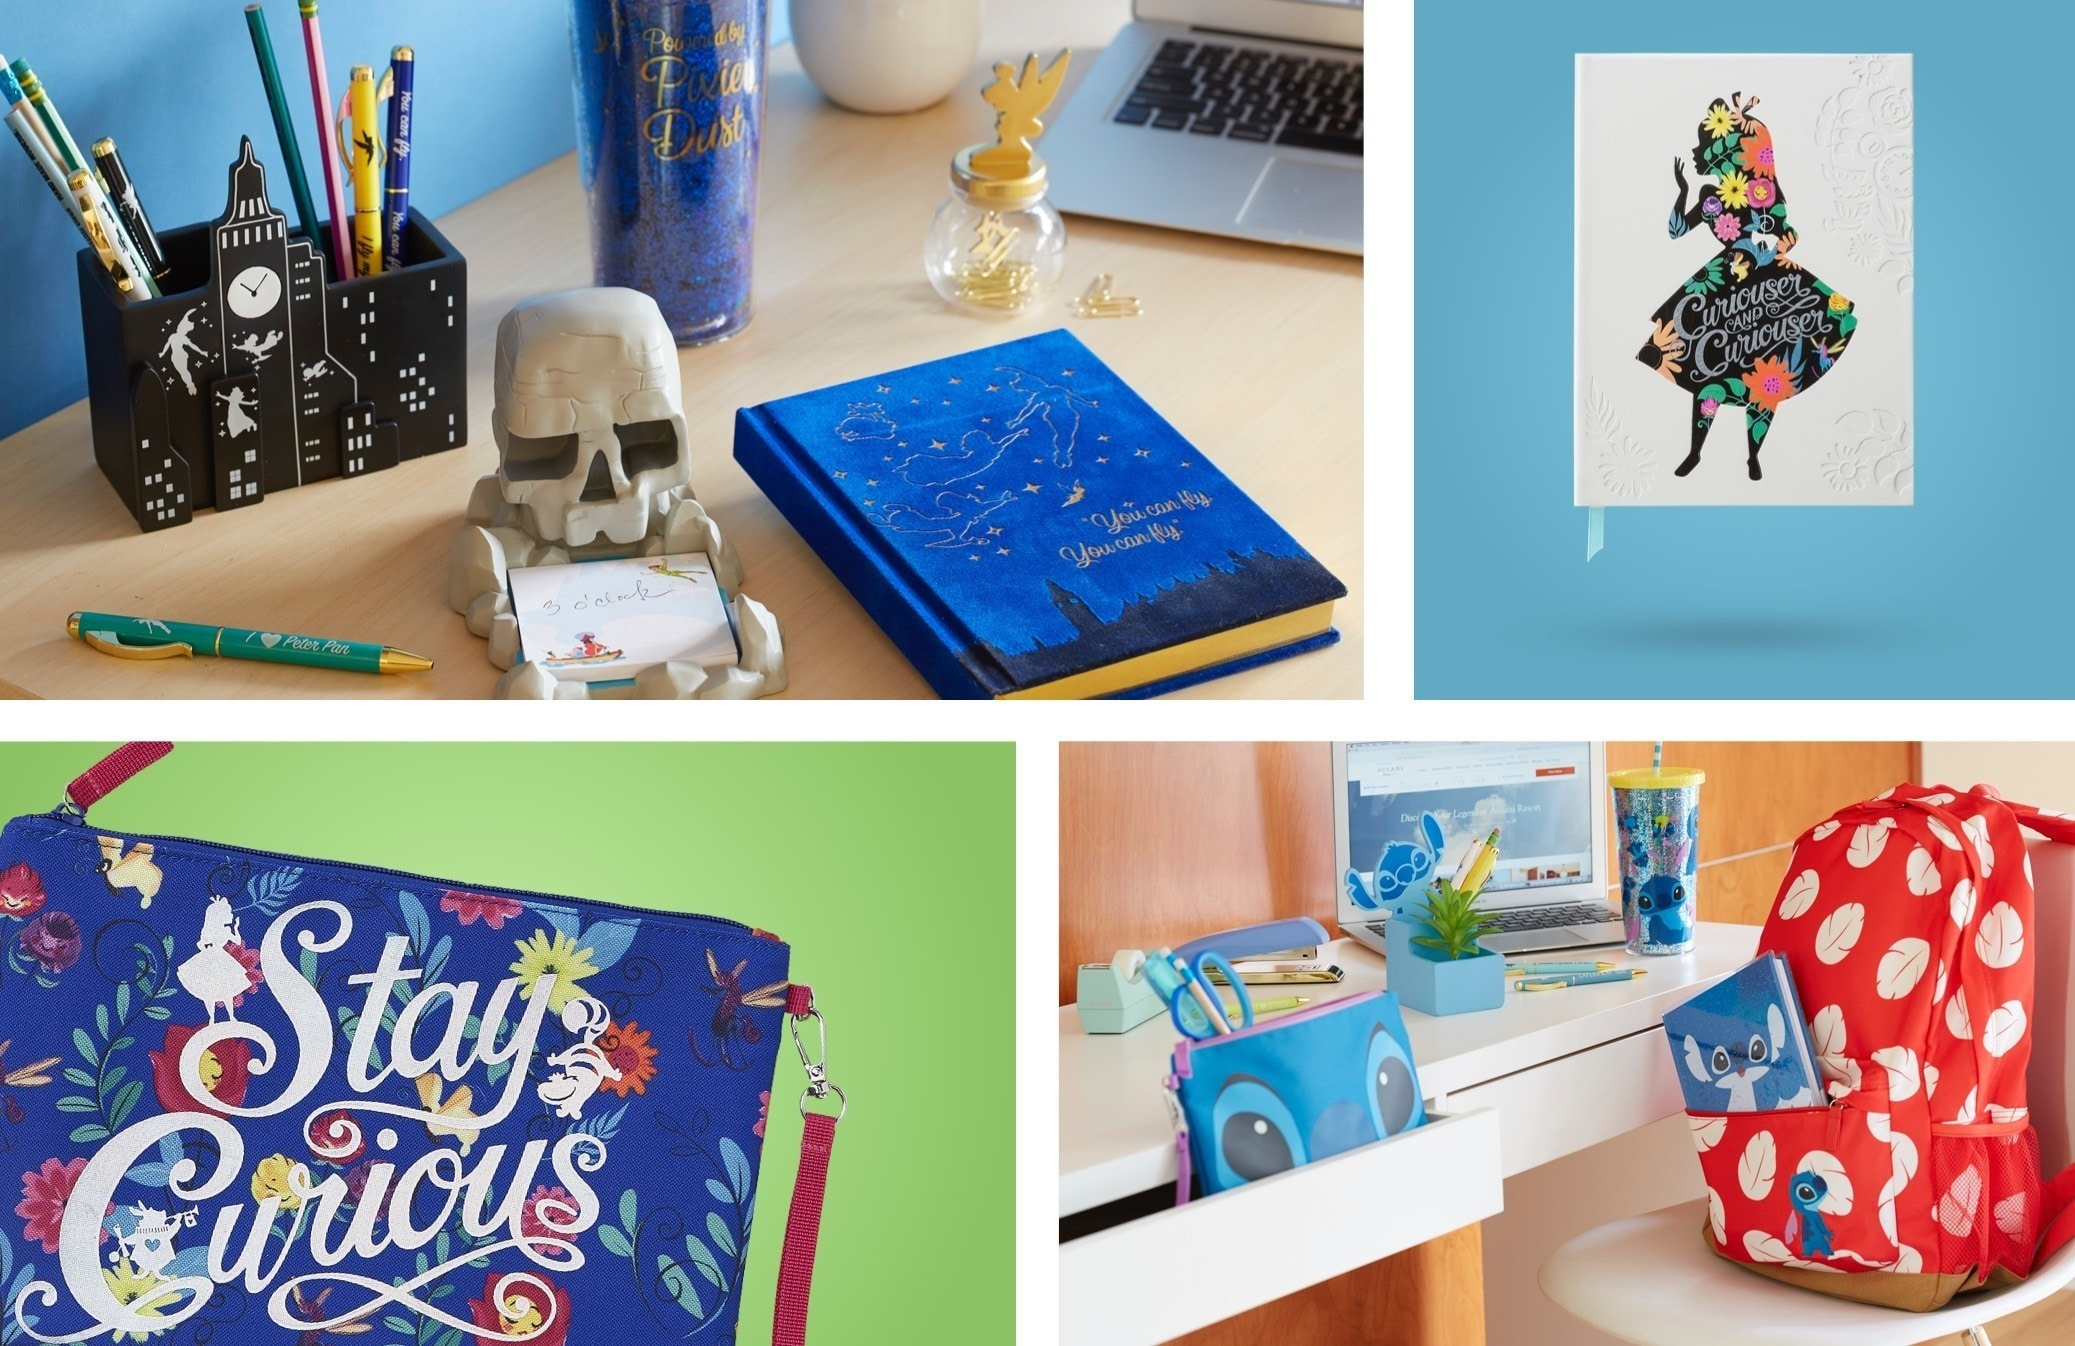 Various stationary and desk items available at shopDisney